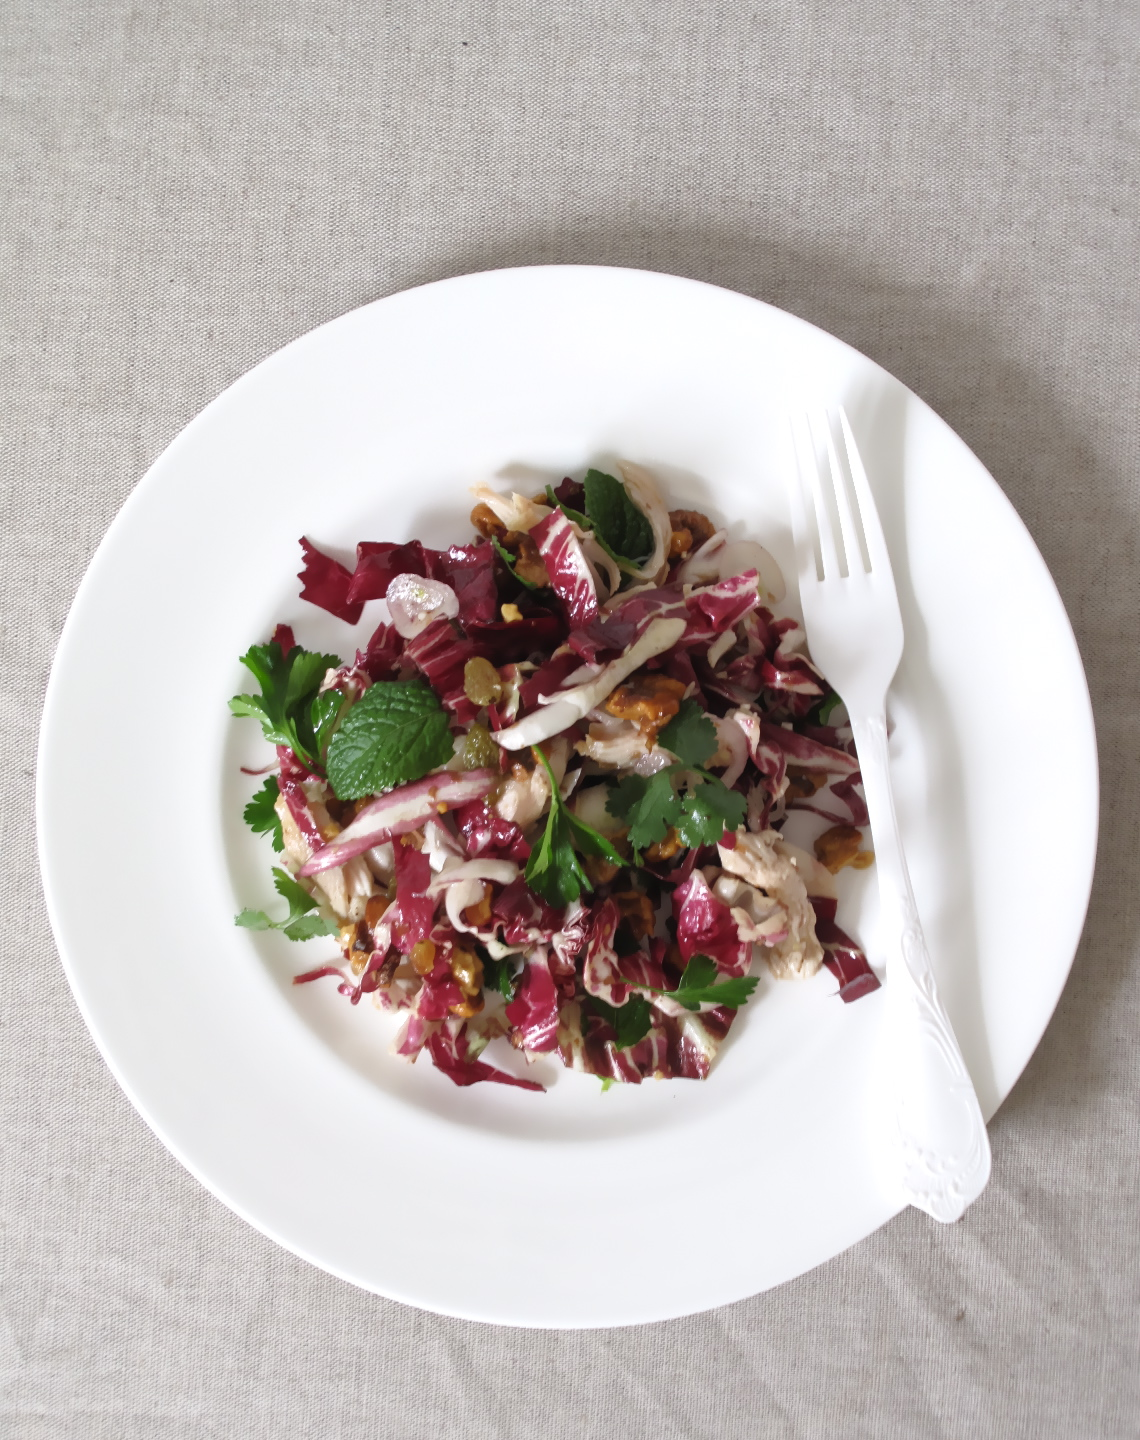 Chicken and Radicchio Salad  with Pickled Raisins + Walnuts